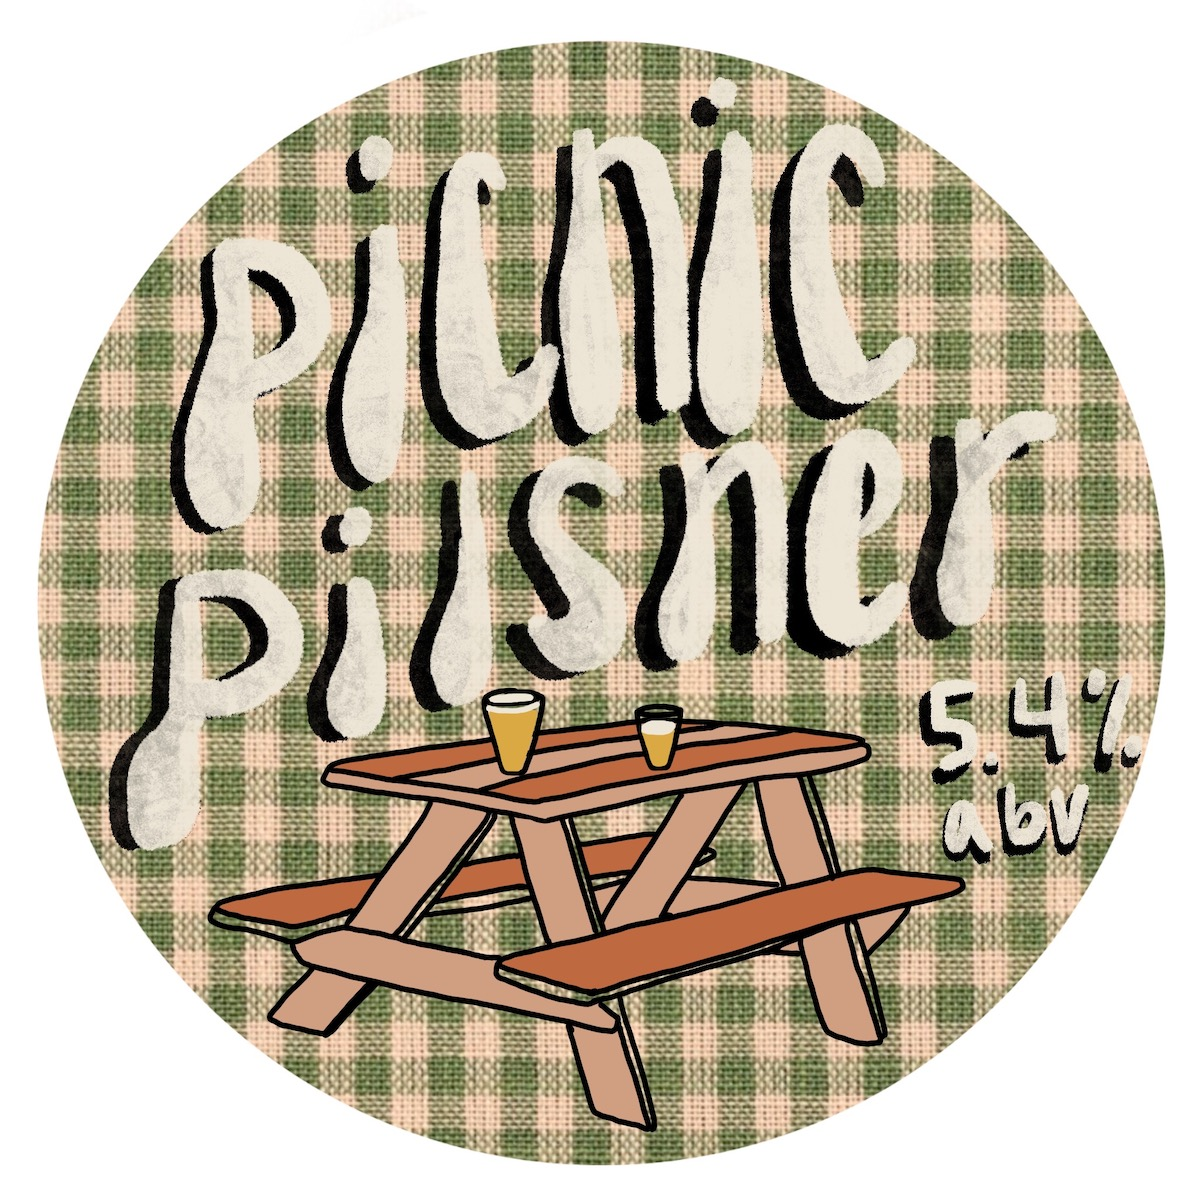 Ocean View Brew Works' Picnic Pilsner. Image courtesy of Ocean View Brew Works